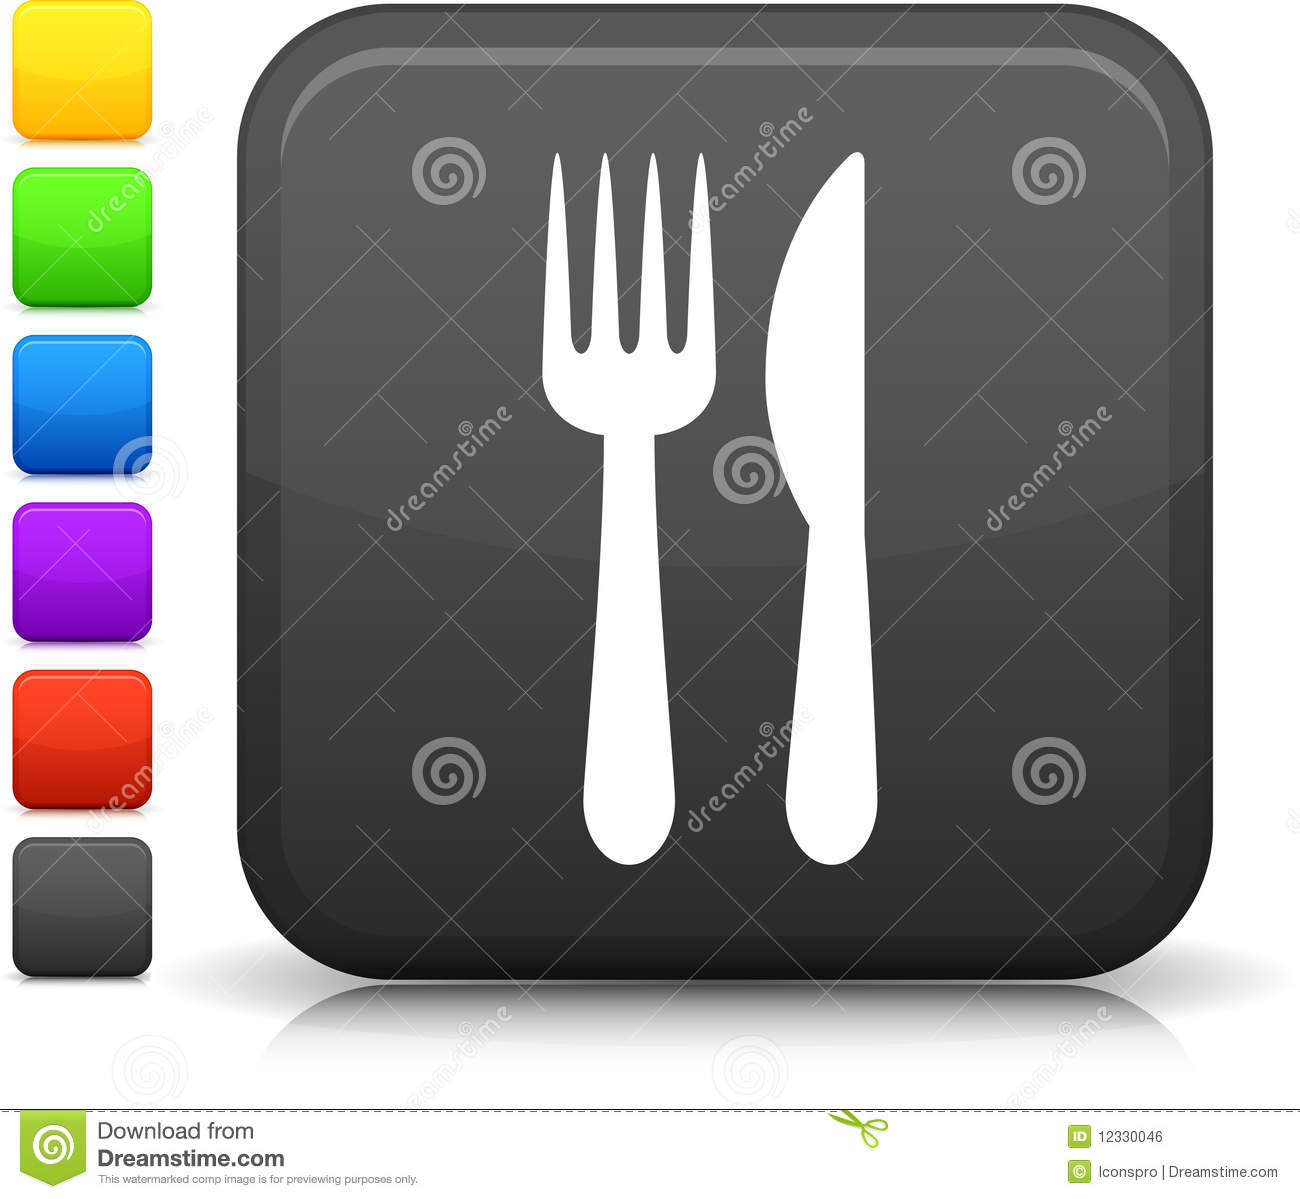 Royalty free stock image knife and fork icon on square internet